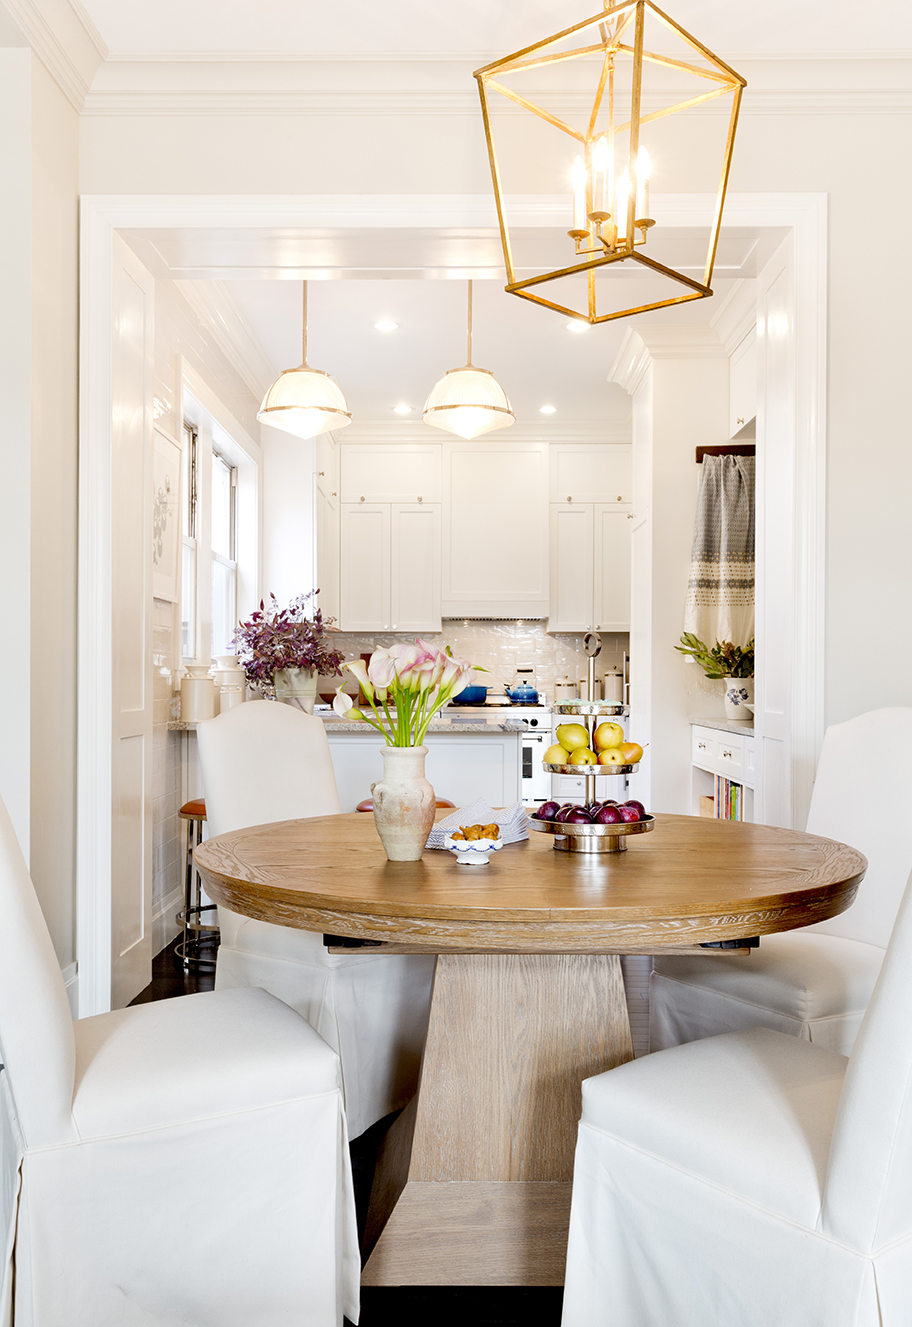 WHIW78_PAMELADAILEYDESIGN-DINING-OPEN-KITCHEN-BEIGHT.jpg